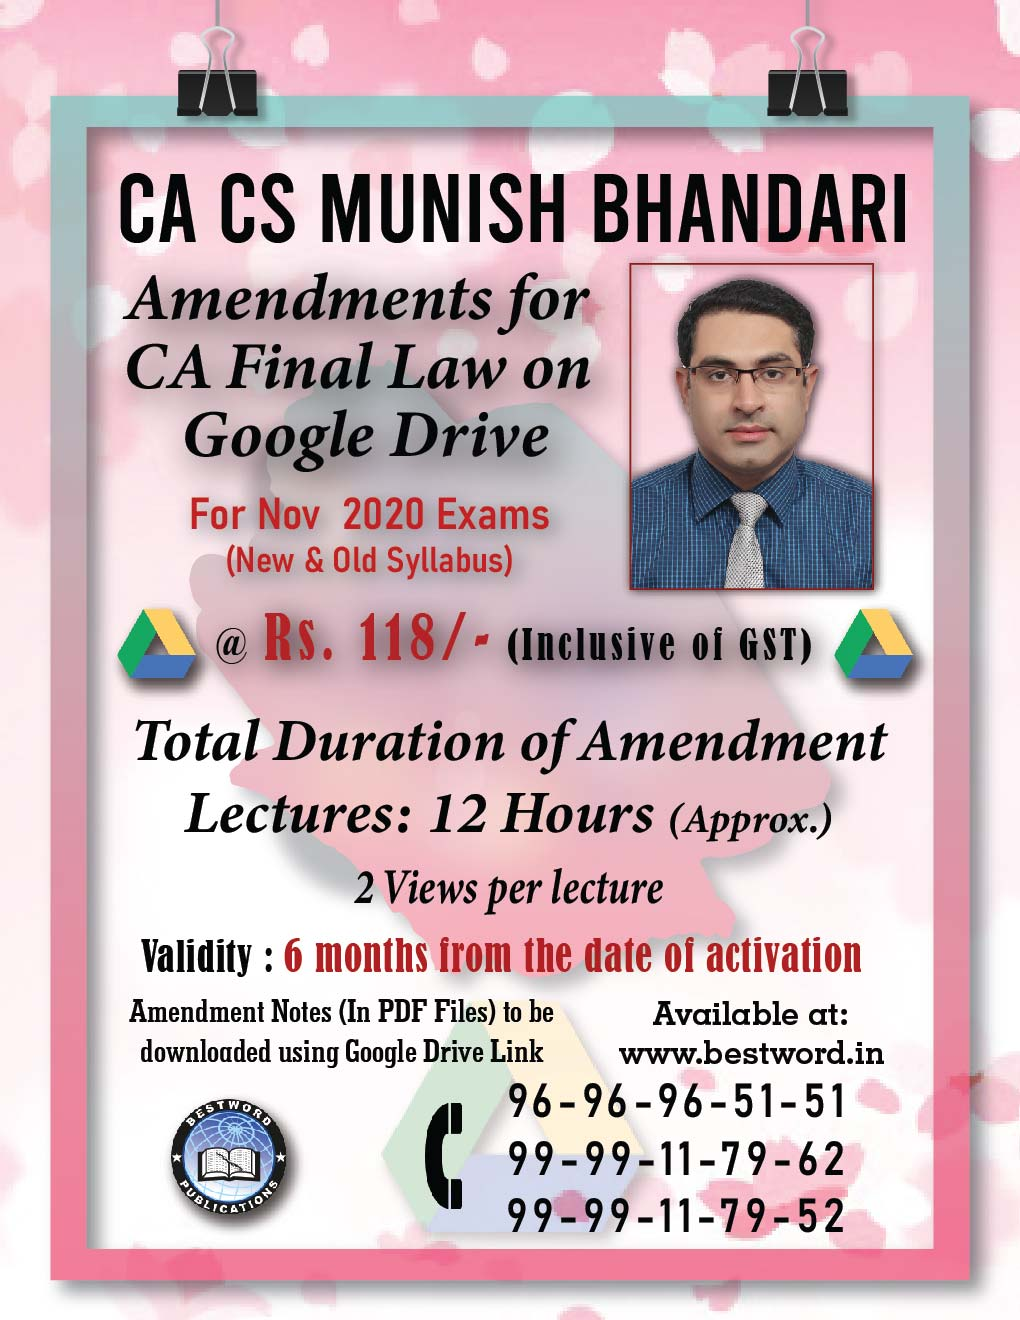 amendments-for-ca-(final)-law-on-google-drive---for-november-2020-exams-(new-and-old-syllabus)